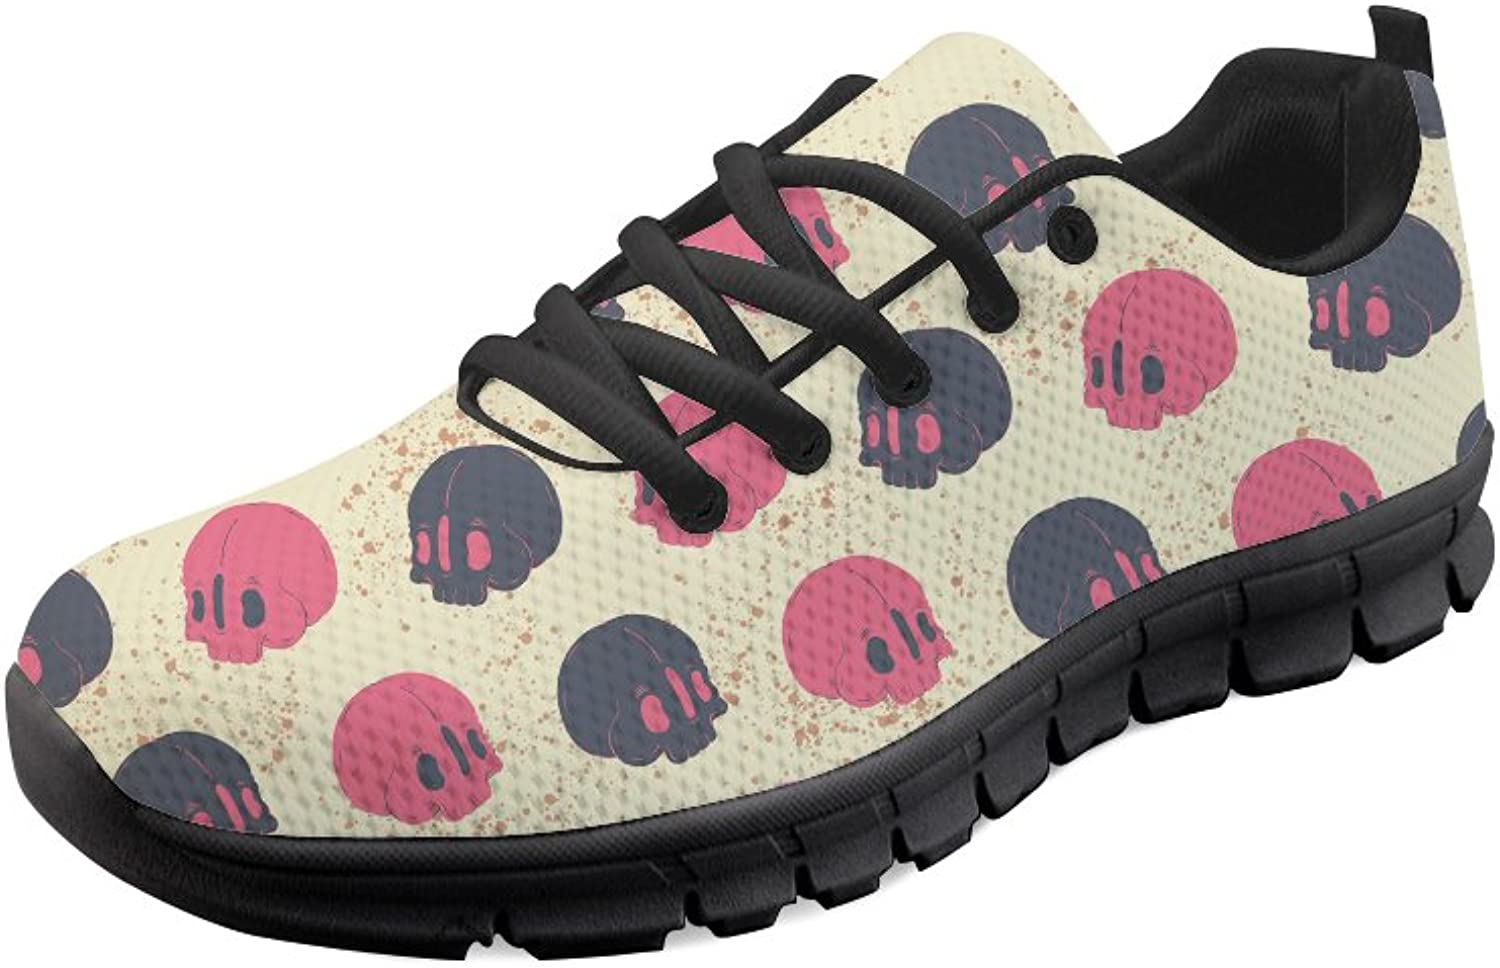 Mumeson Dessert Printed Women Running Sneakers Breathable Athletic Walking shoes